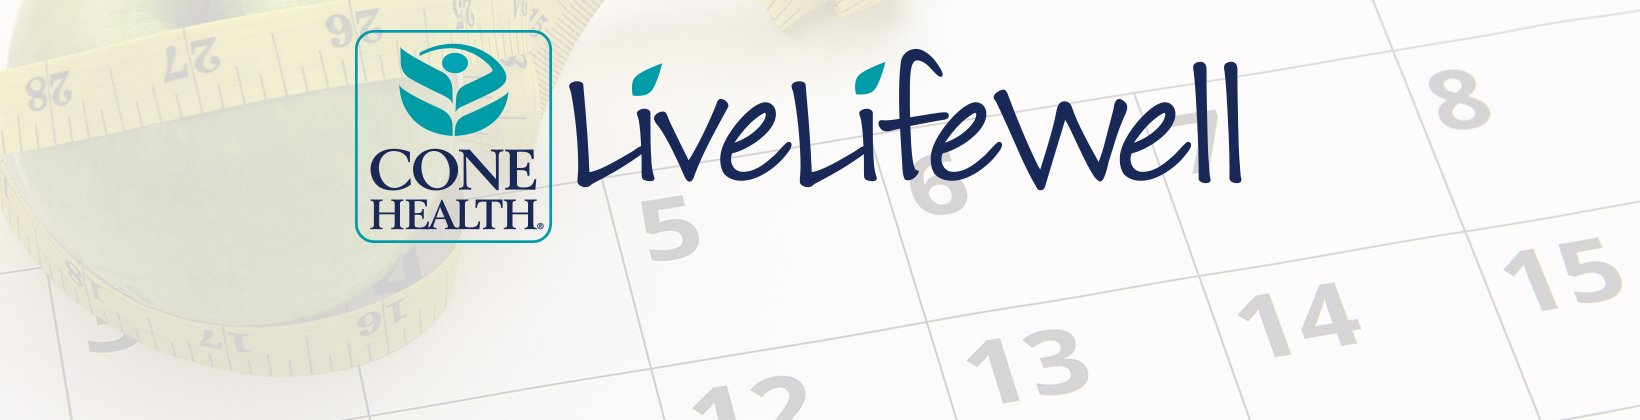 Upcoming Events   Cone Health